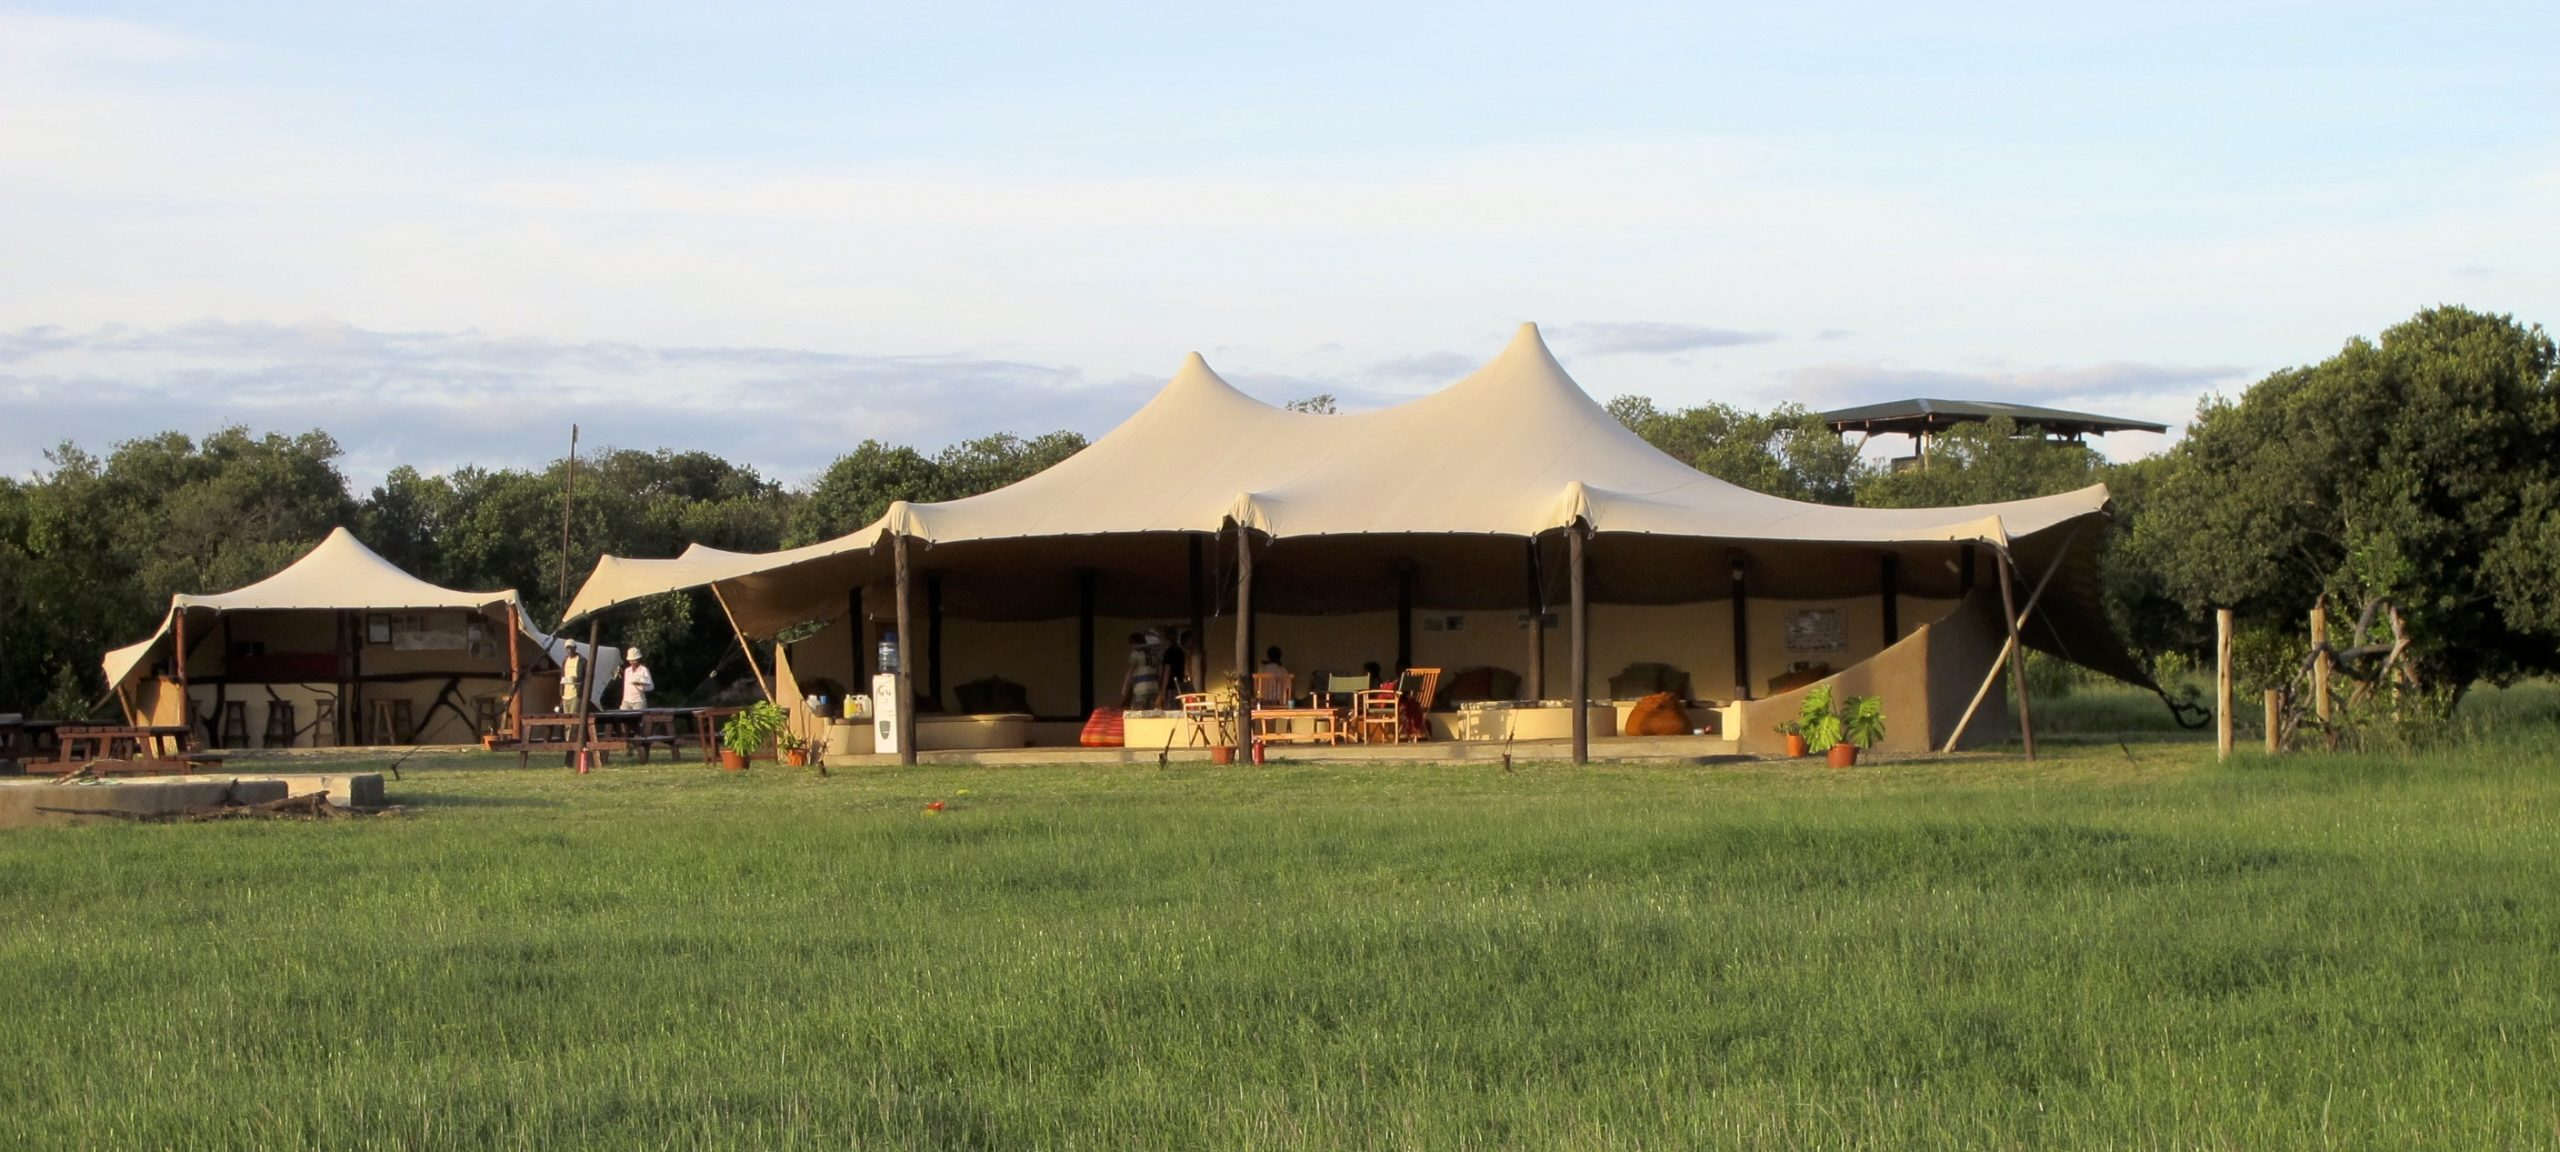 Ol Pejeta Wildlife Camp